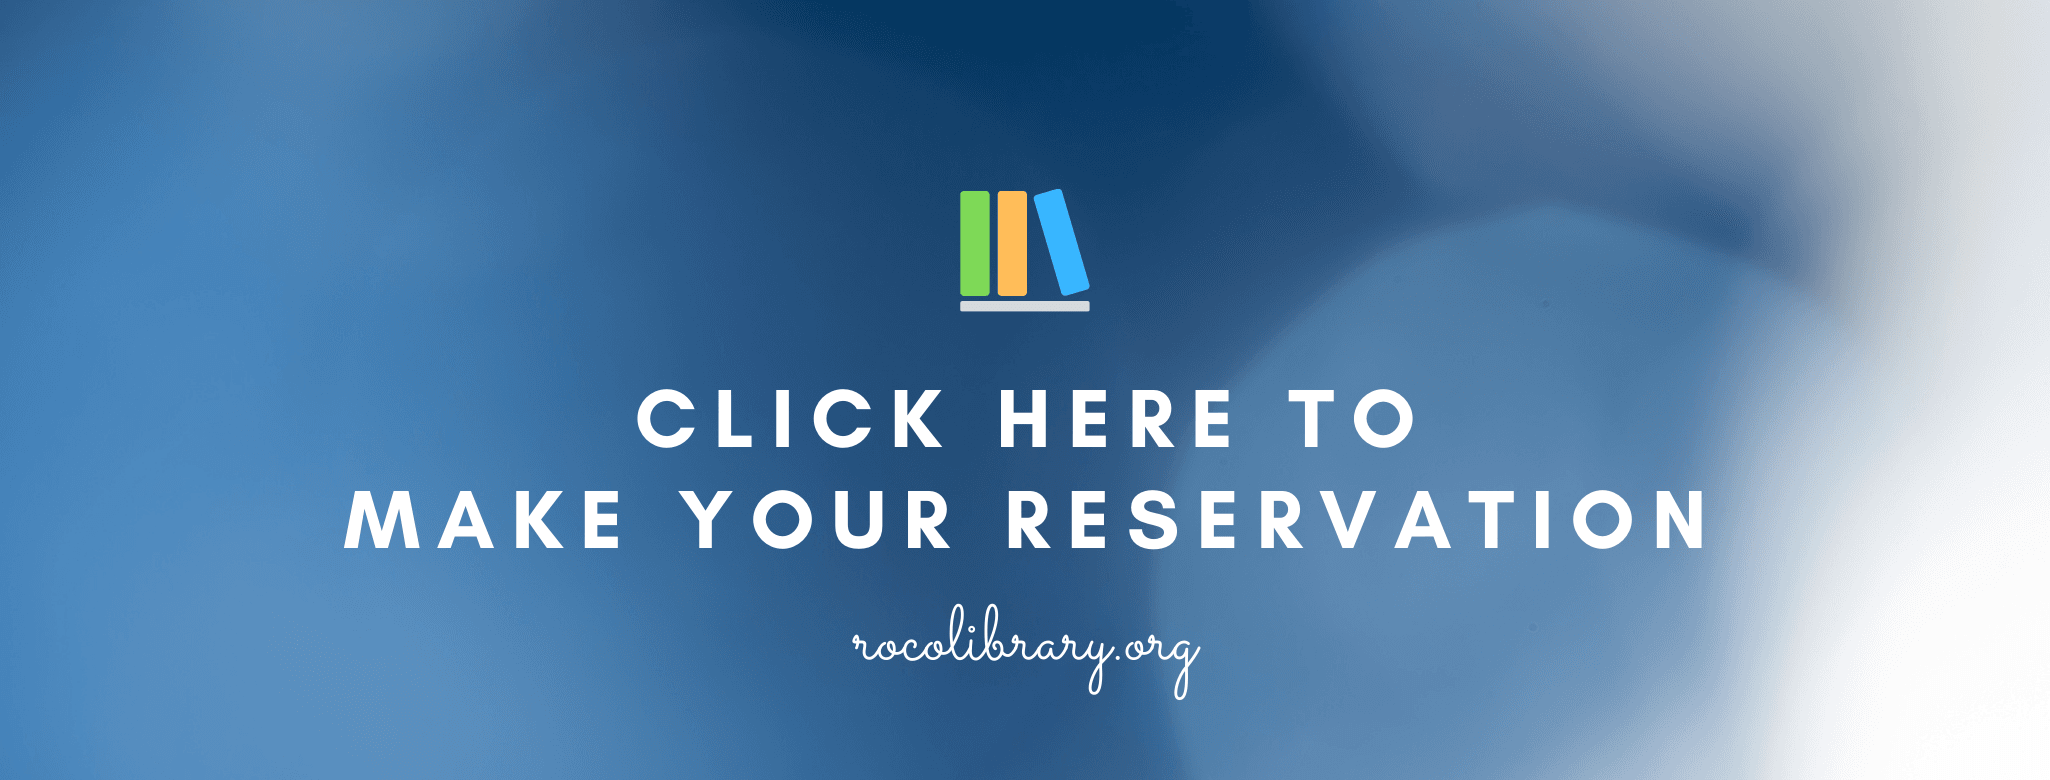 Reservations at RCPL